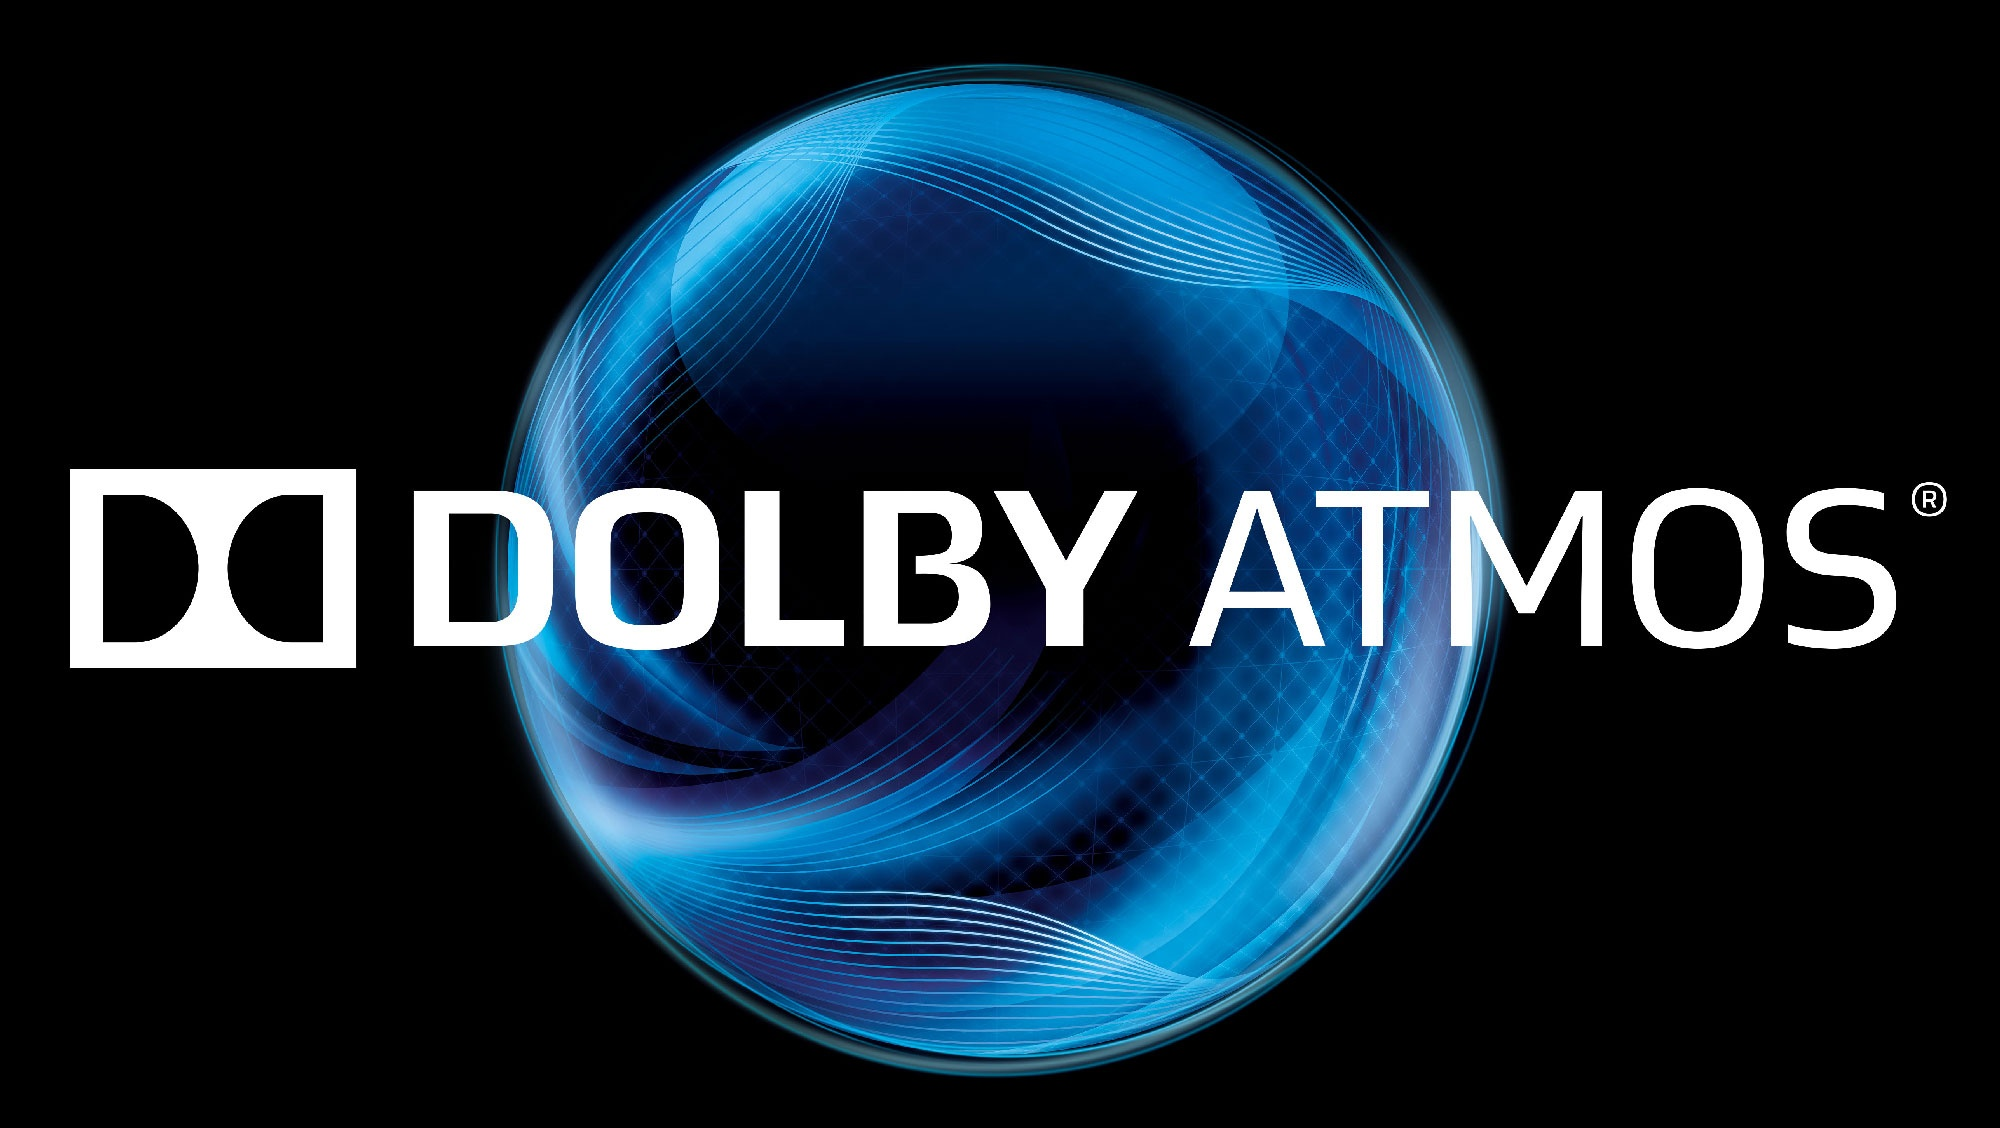 Dolby Atmos Upmixing for all Games and Movies Comes to Xbox